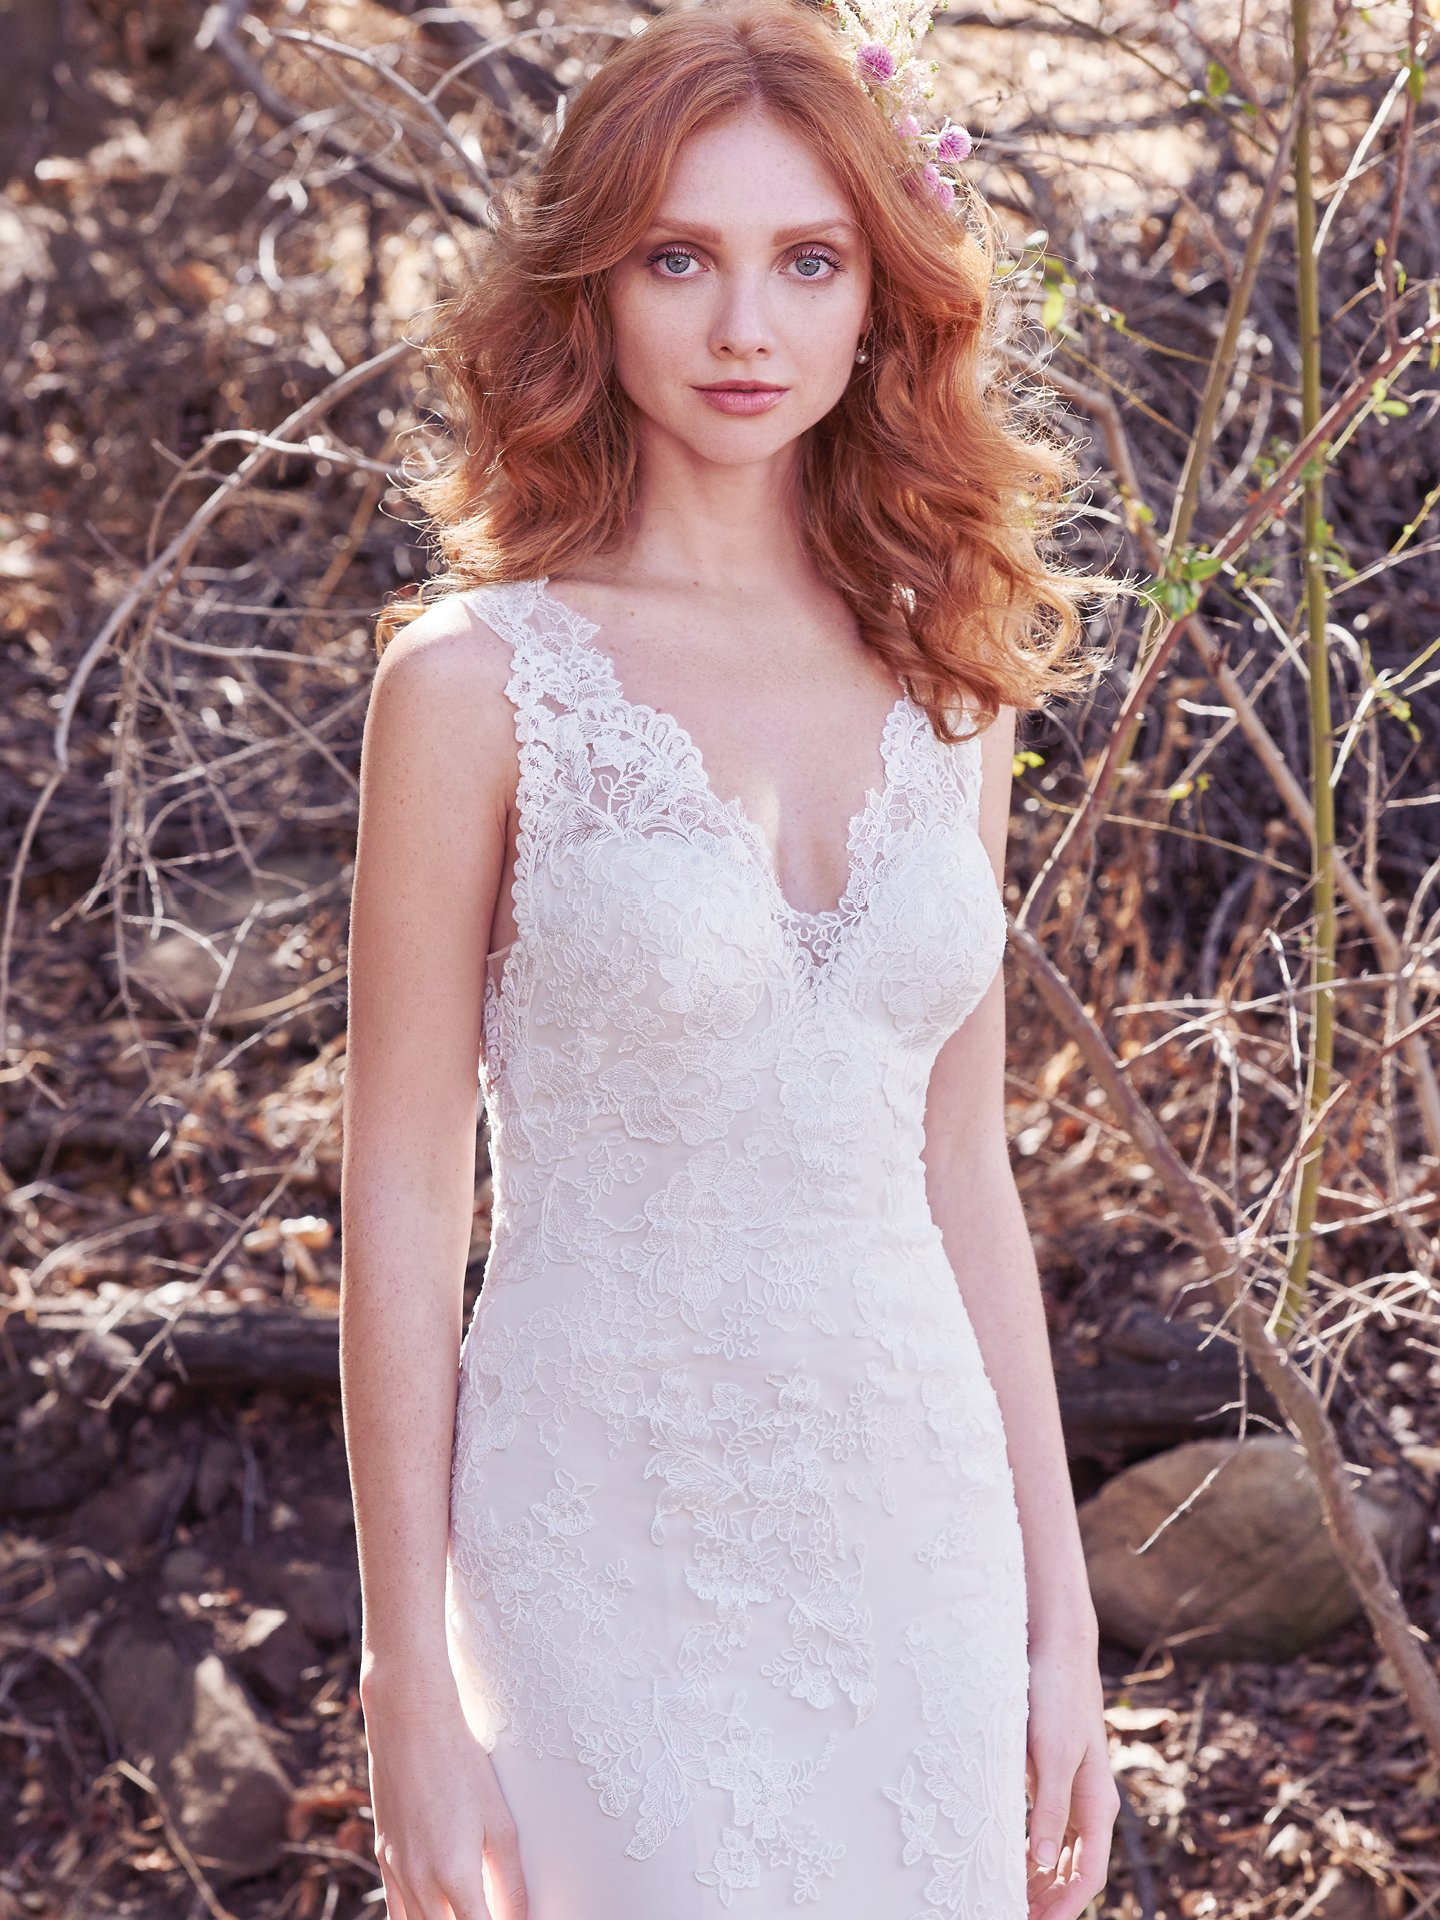 Even more blush wedding dresses by maggie sottero love maggie ramona blush wedding dress this soft sheath wedding dress features cascades of heirloom inspired junglespirit Image collections